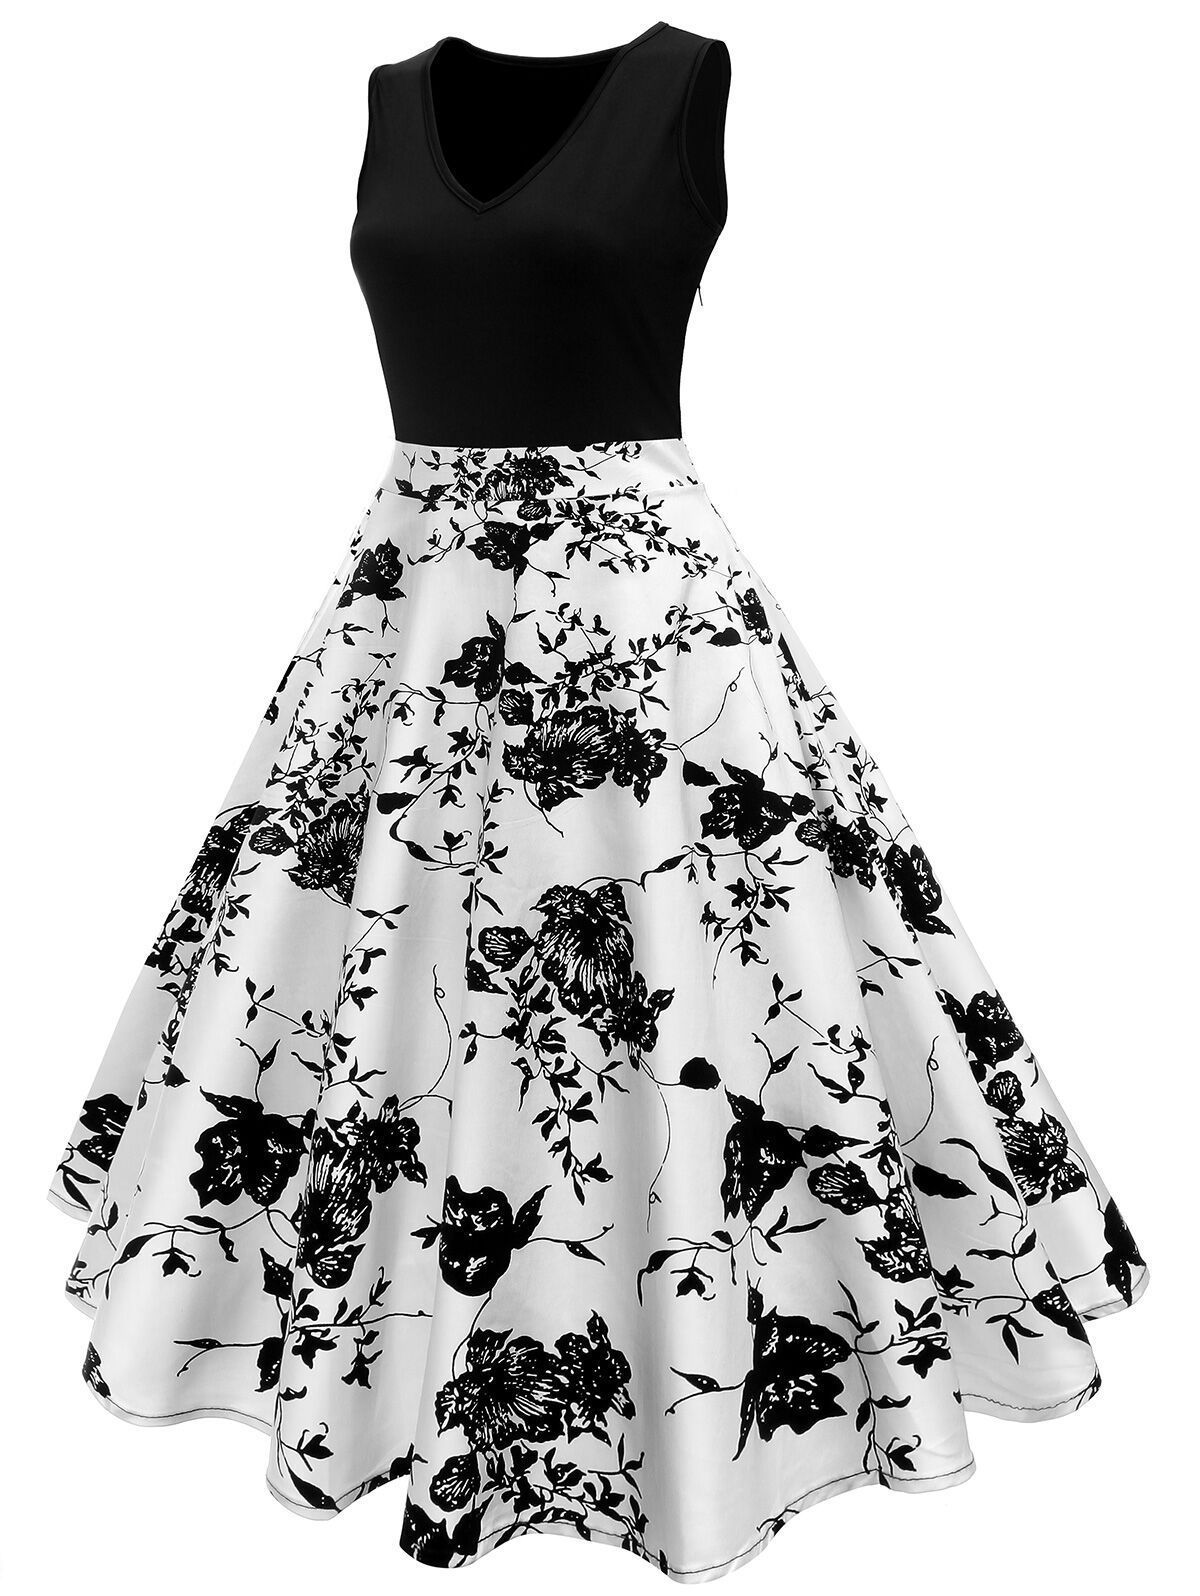 f1775c5b8f14 Plus Size 1950s Floral Polka Dot Dress – Retro Stage - Chic Vintage Dresses  and Accessories